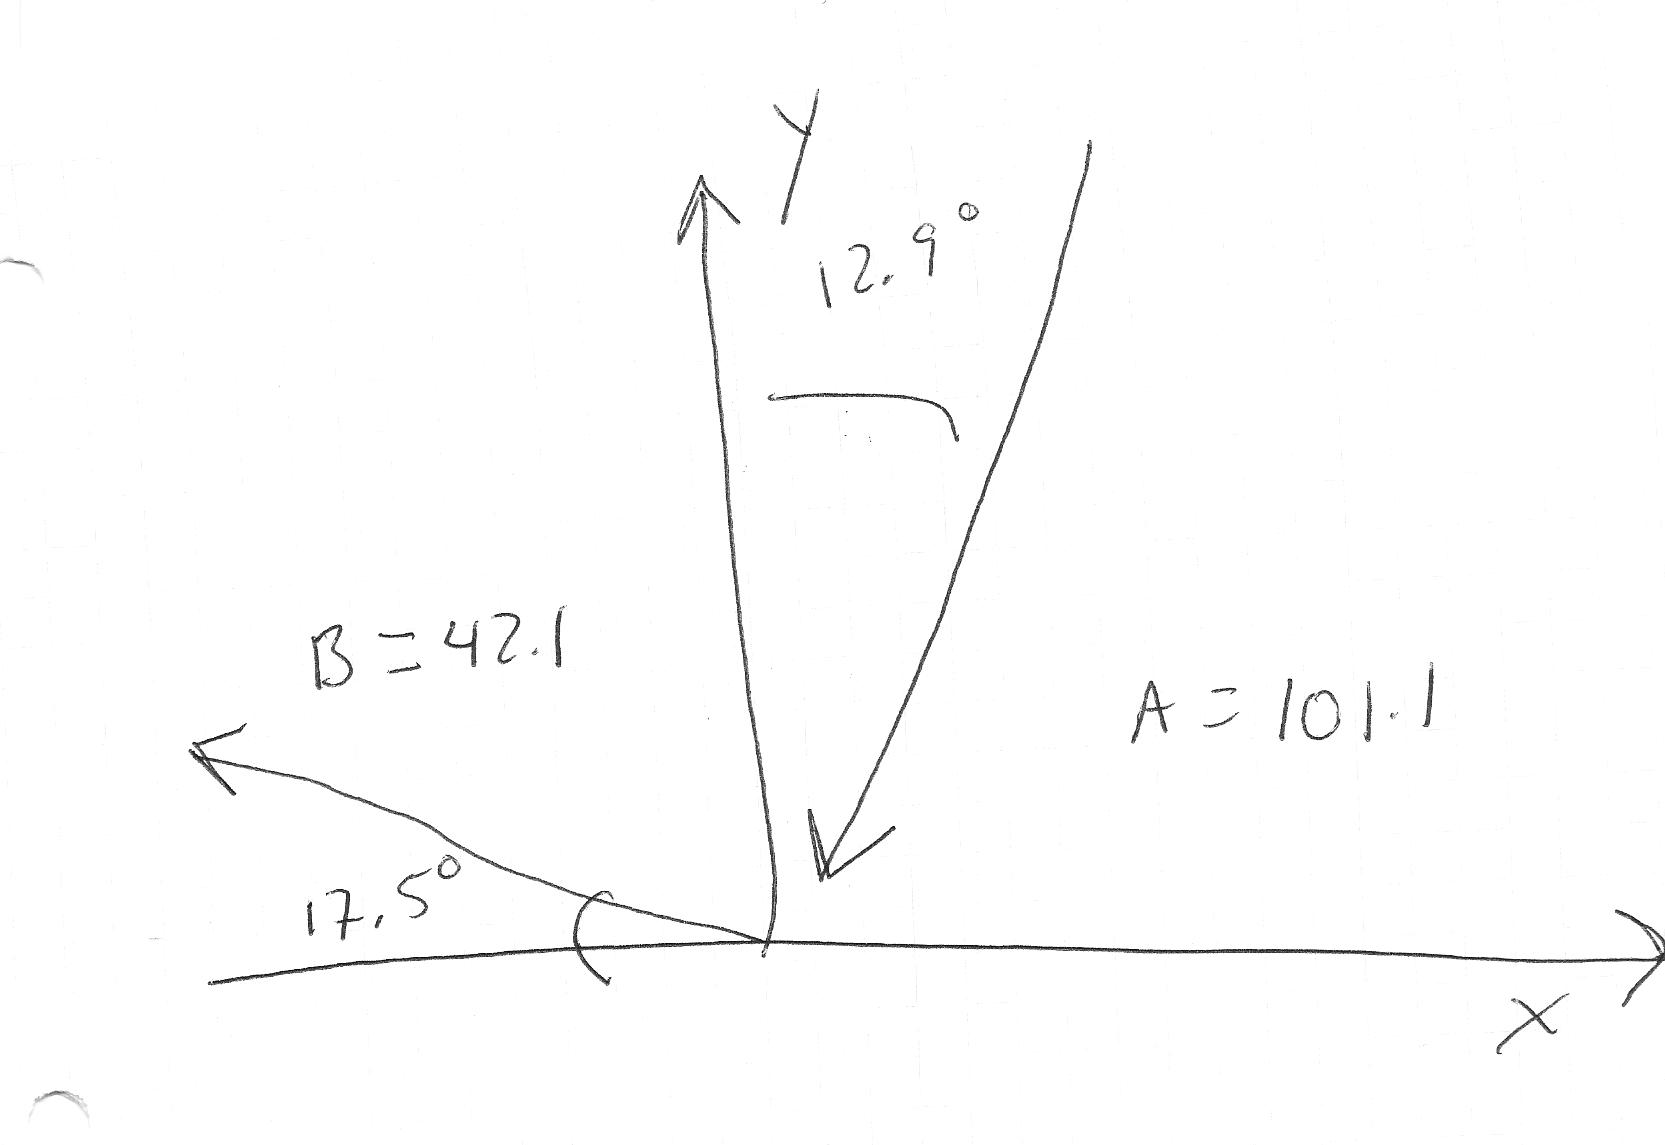 Determine the magnitude and direction of the resultant vector.